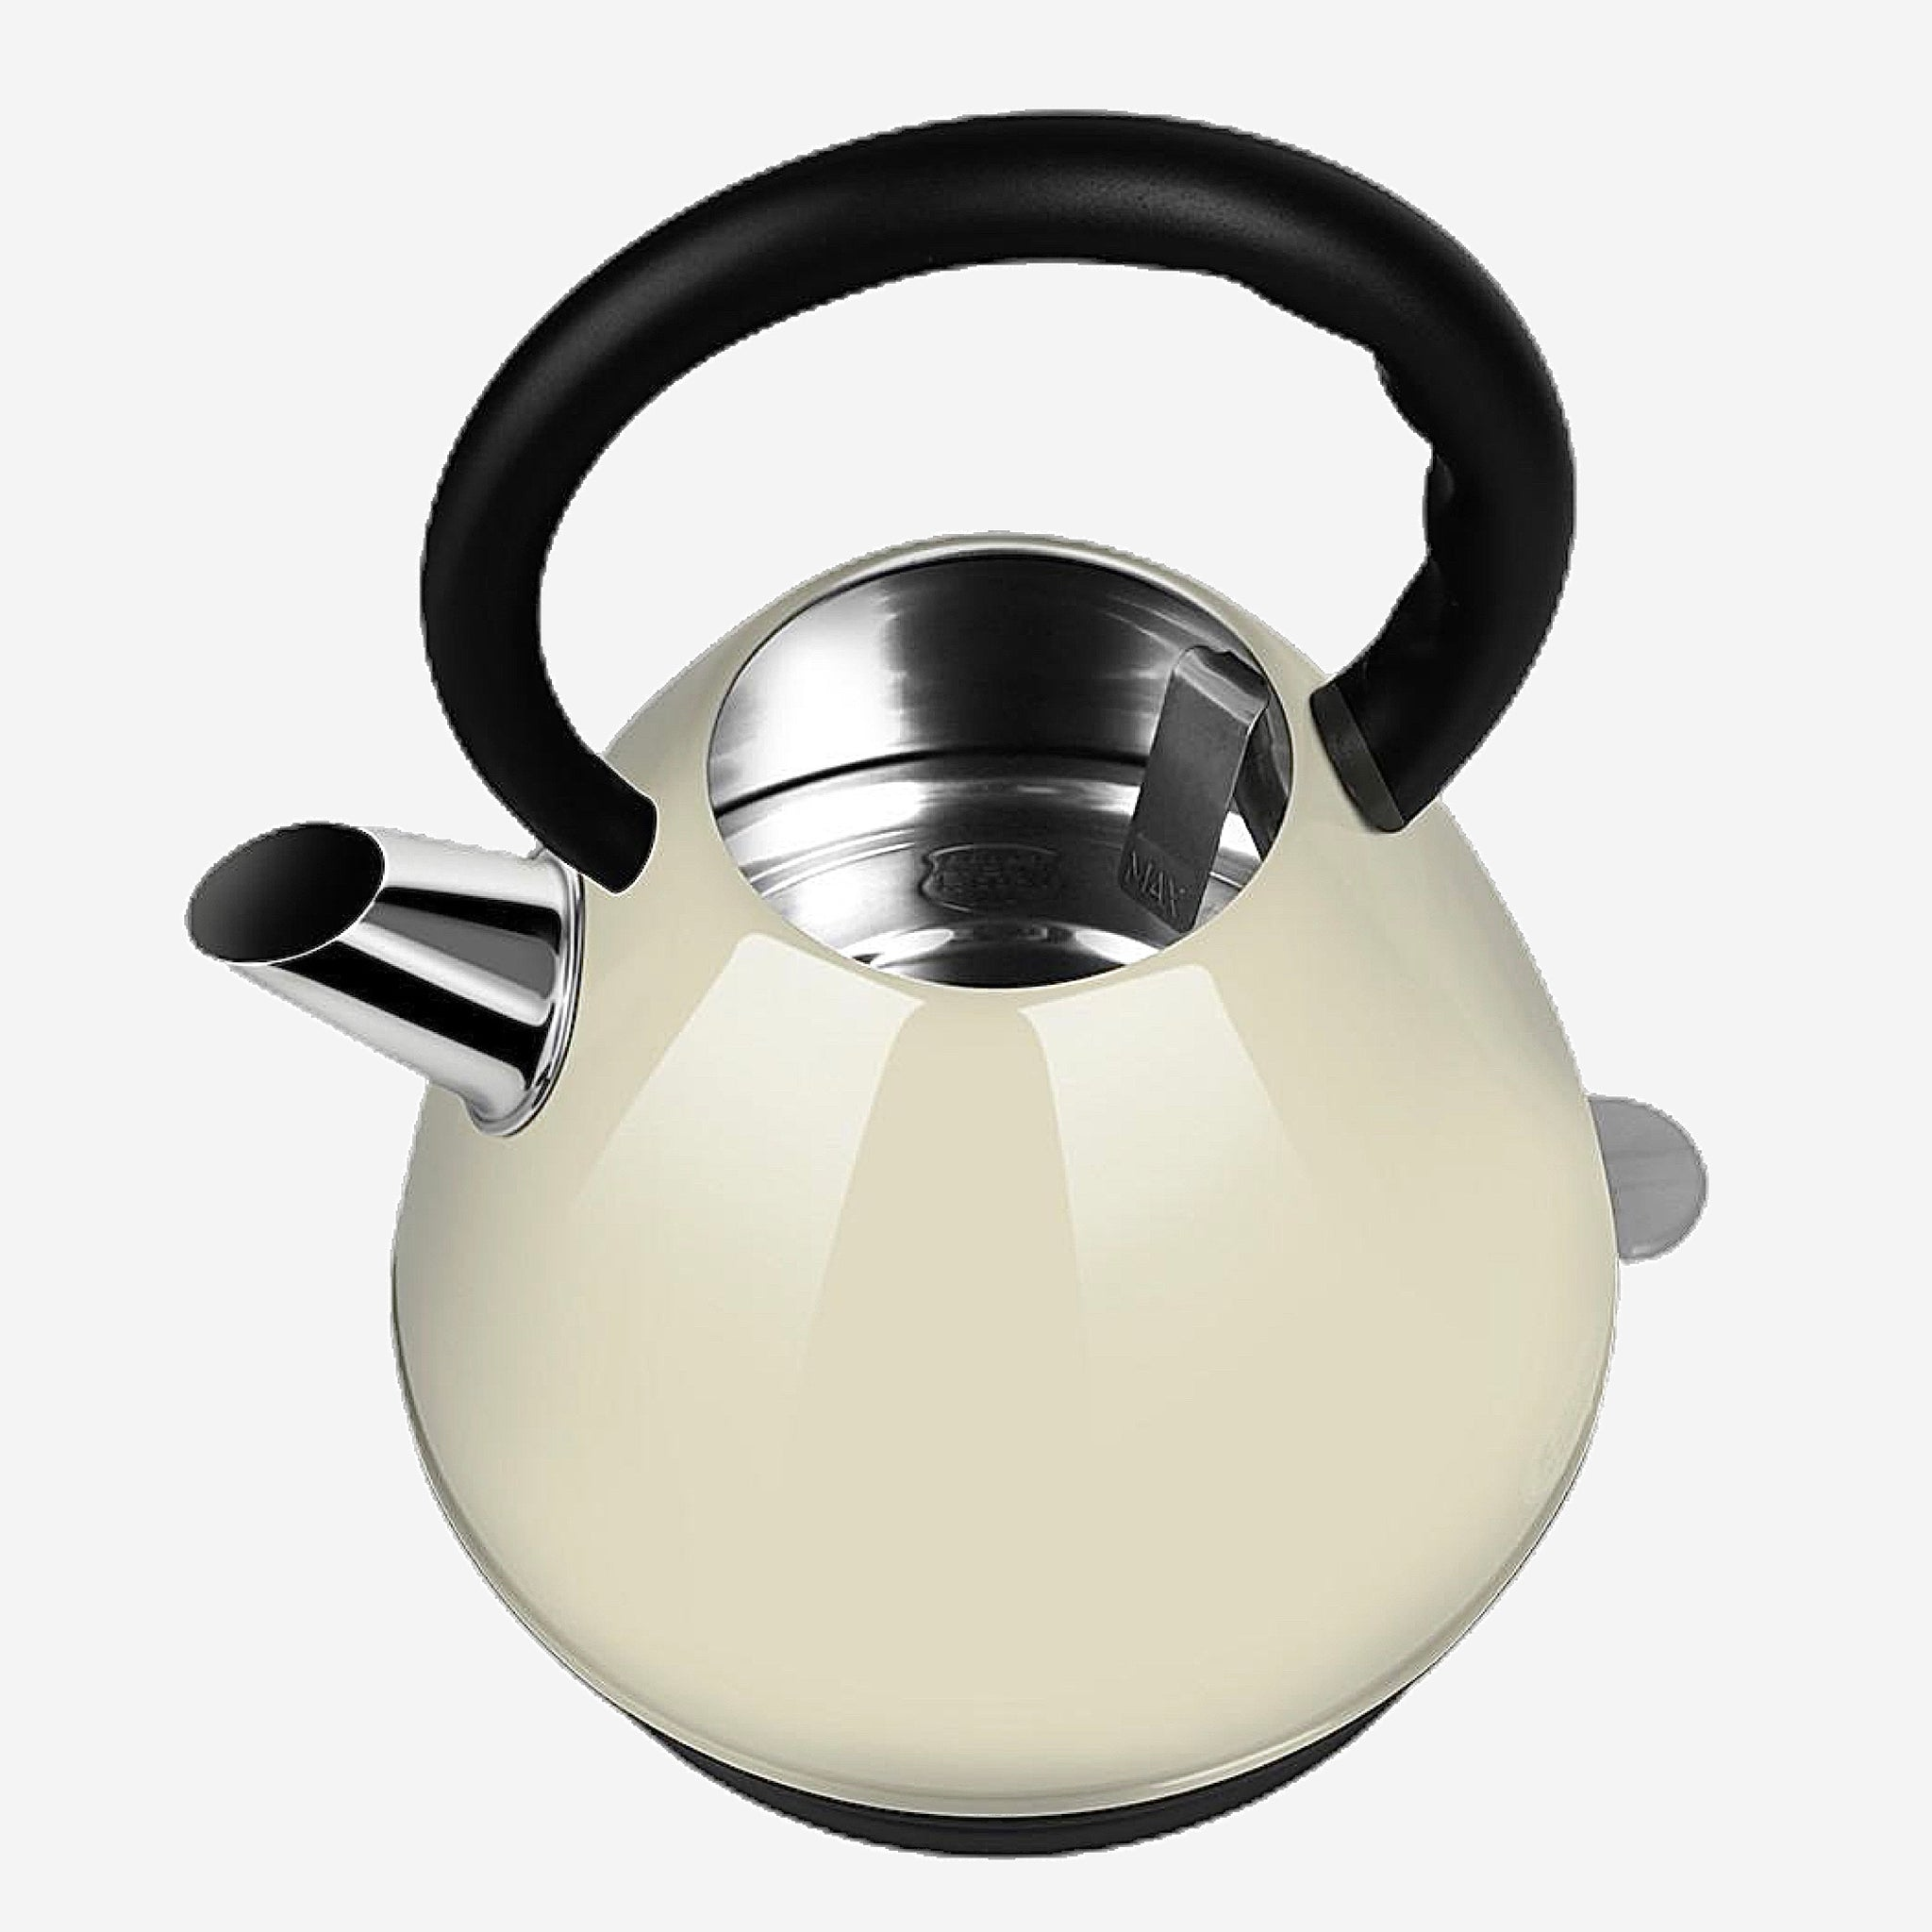 White Stainless Steel Electric Kettle Automatic power supply 2L capacity Household Kitchen Appliance Style